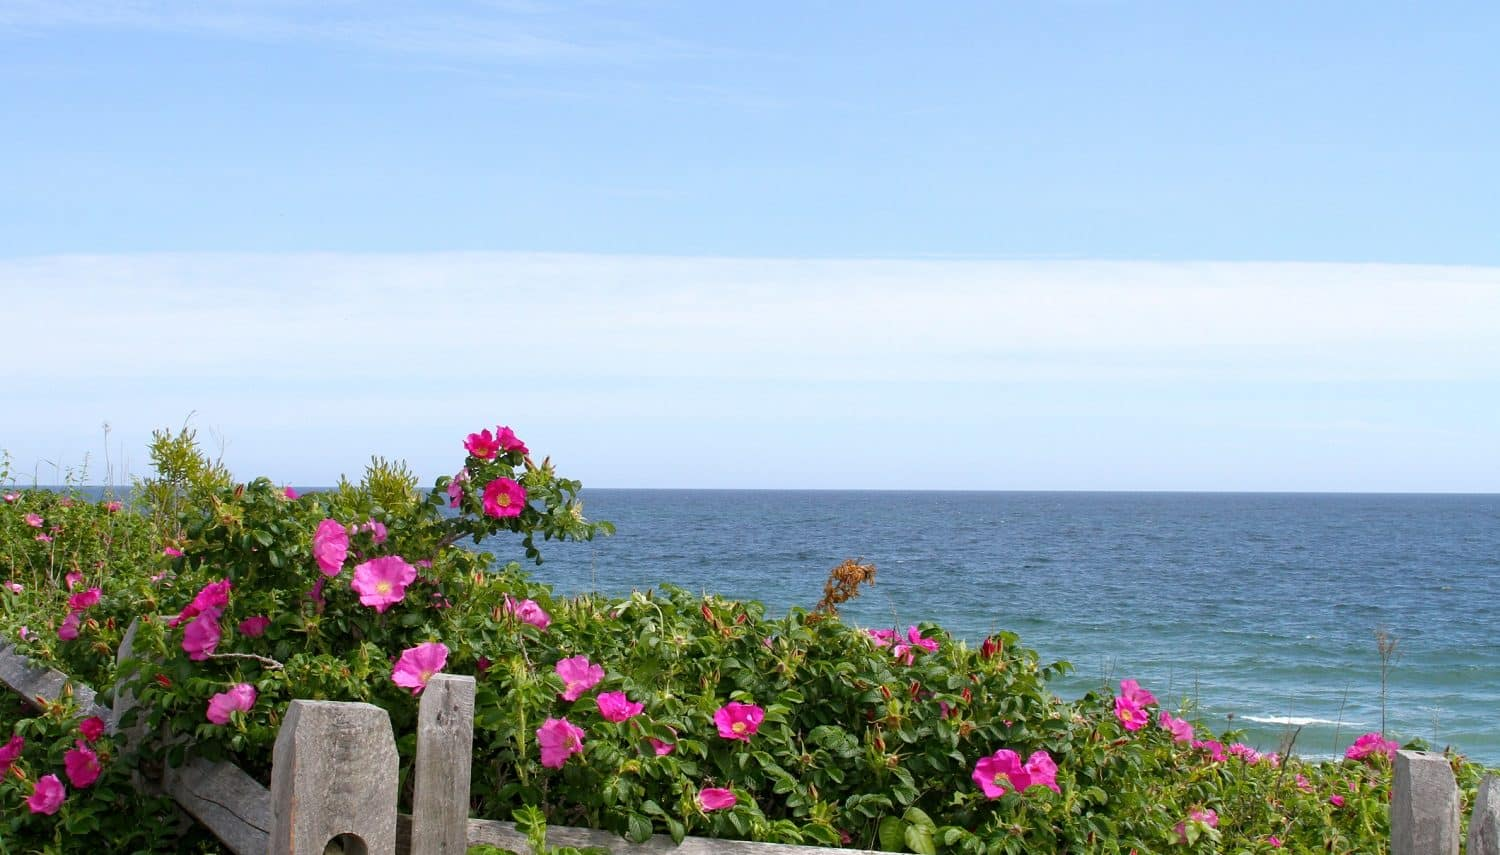 Ocean view on the Cape Cod National Seashore